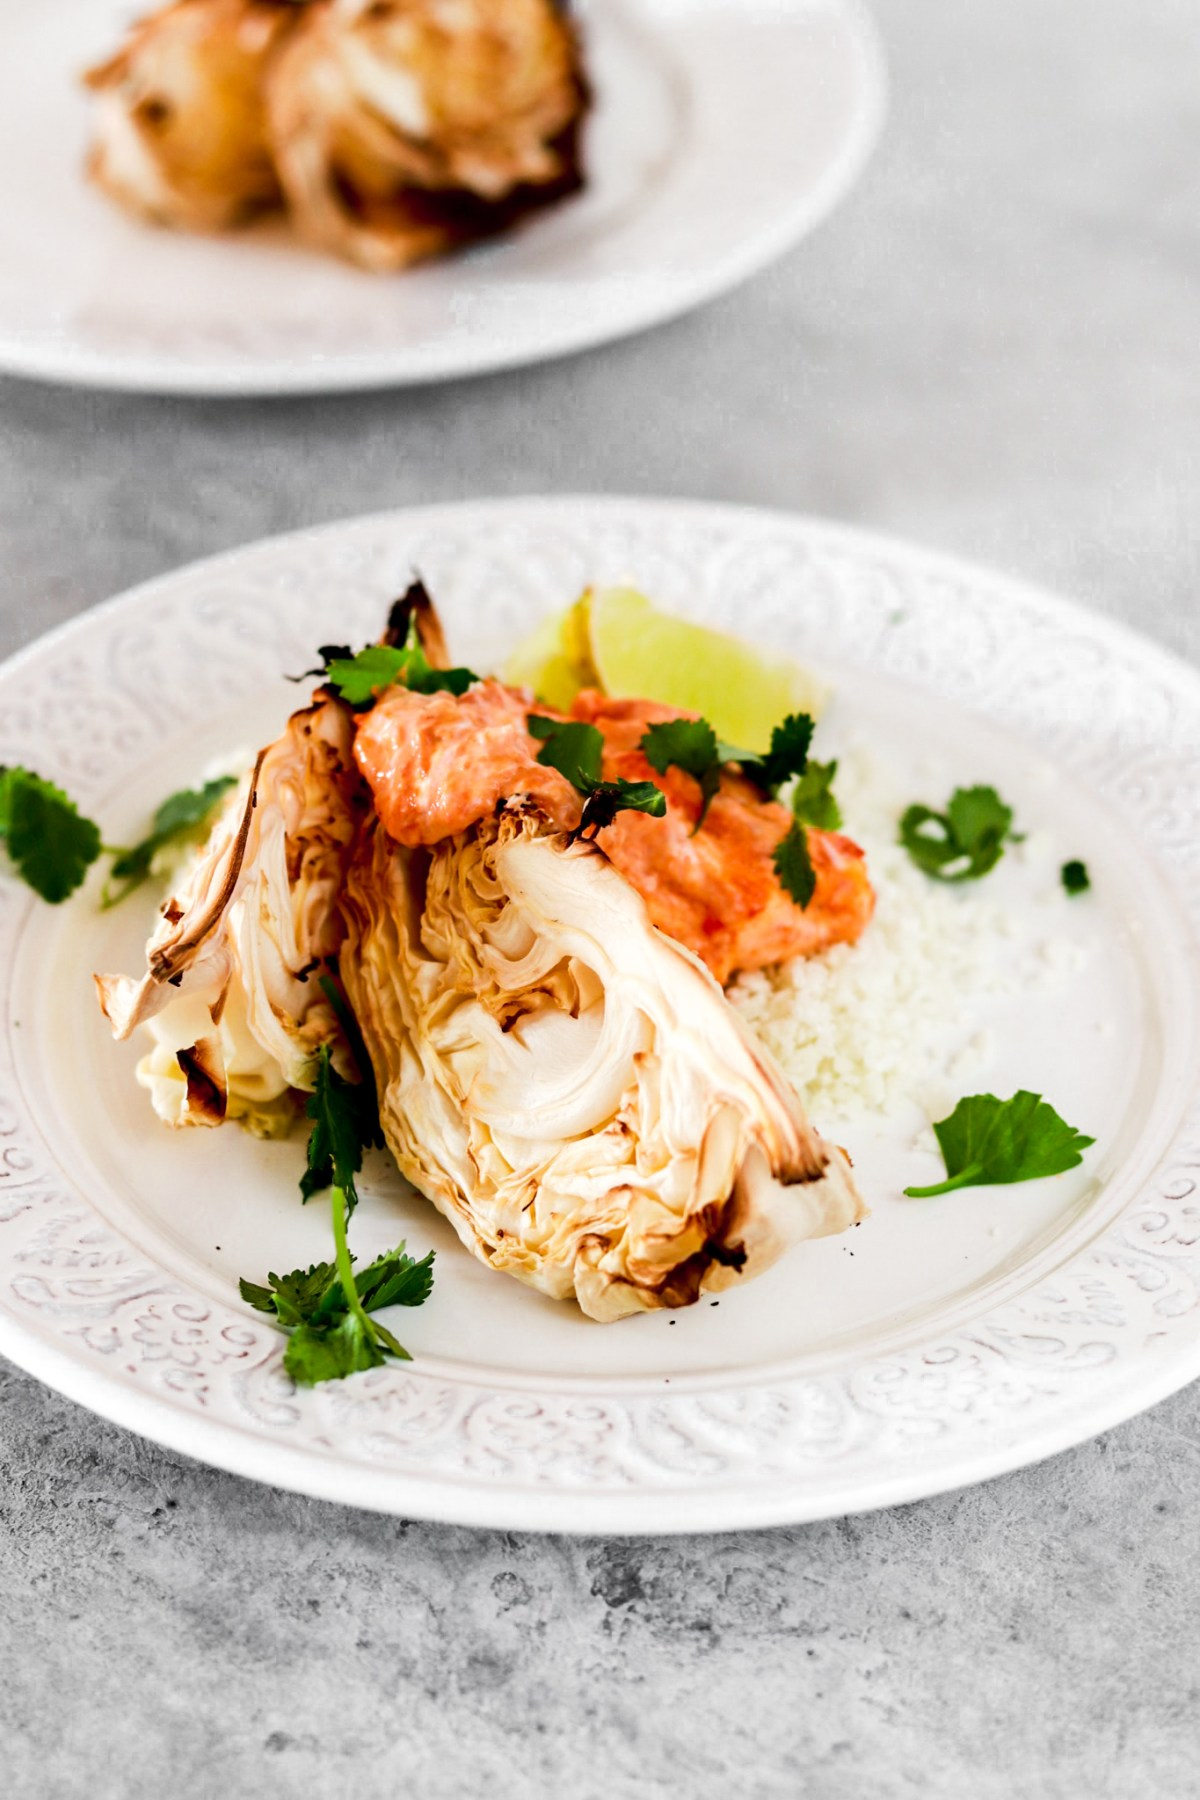 Glazed Point Cabbage with Spicy Dressing (Vegan, Gluten & Sugar Free) From front On A Plate